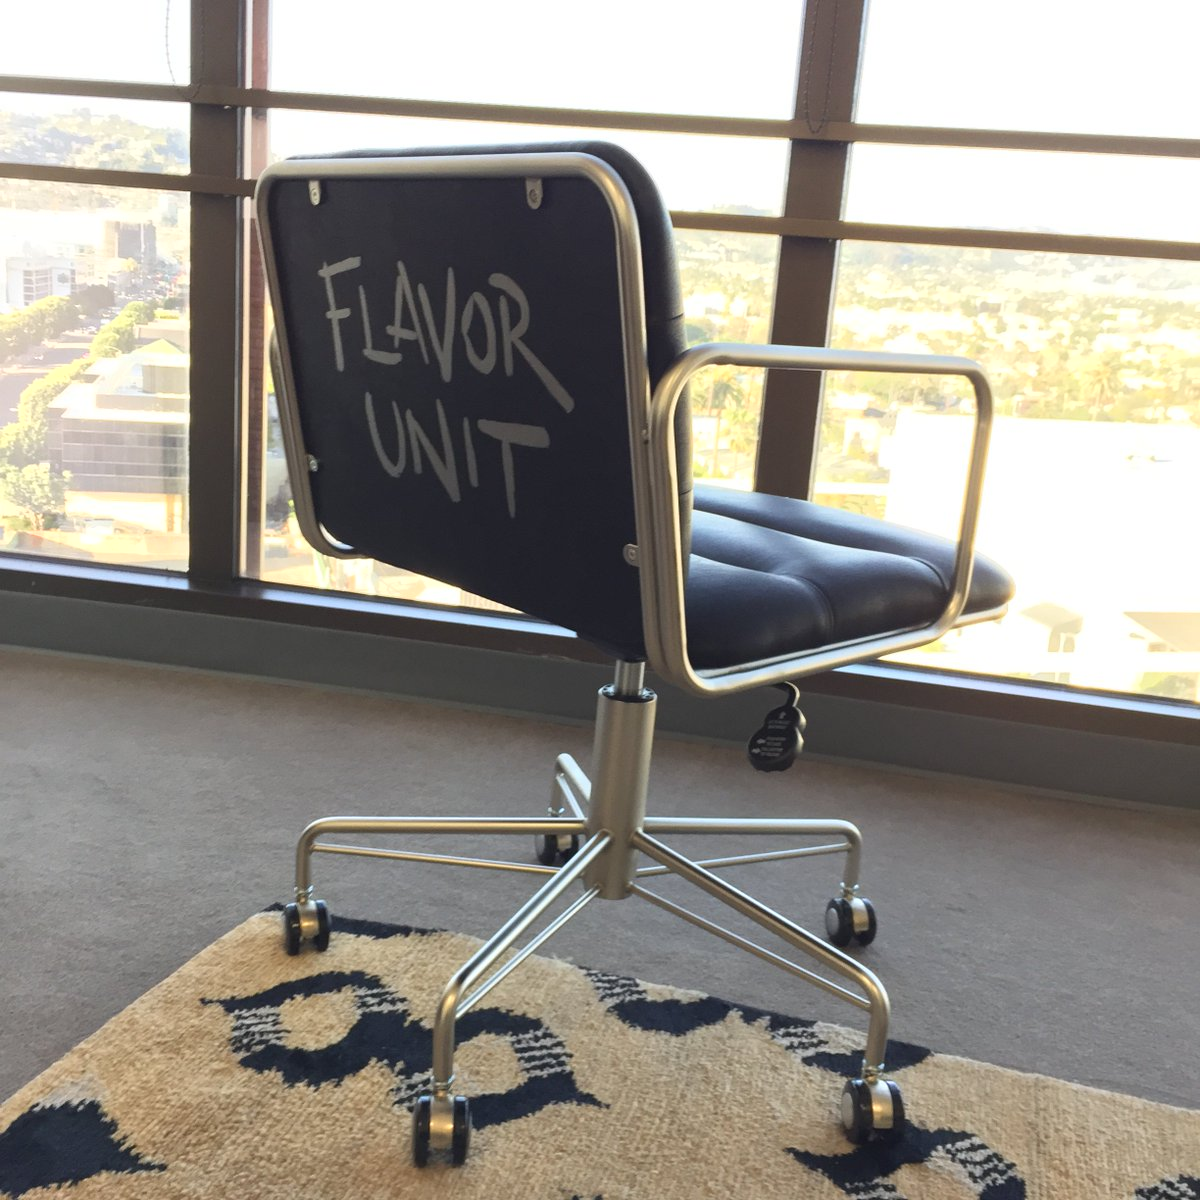 RT @flavorunit: Even our chairs got flavor ???? #officelife https://t.co/muMbDOYmBM